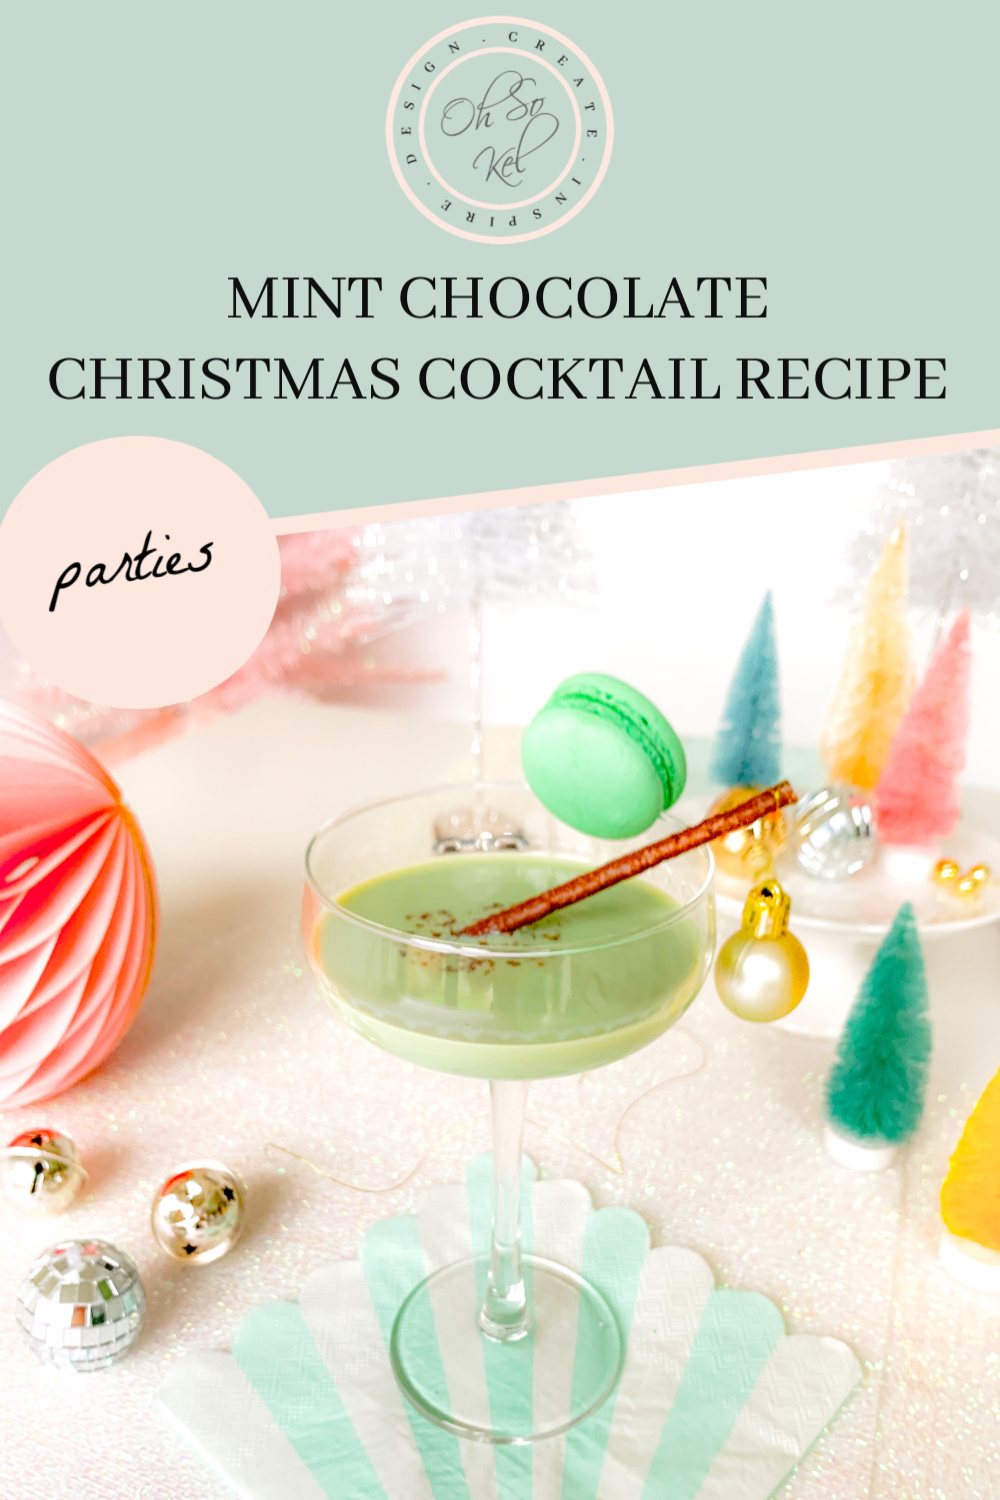 Mint chocolate Christmas cocktail